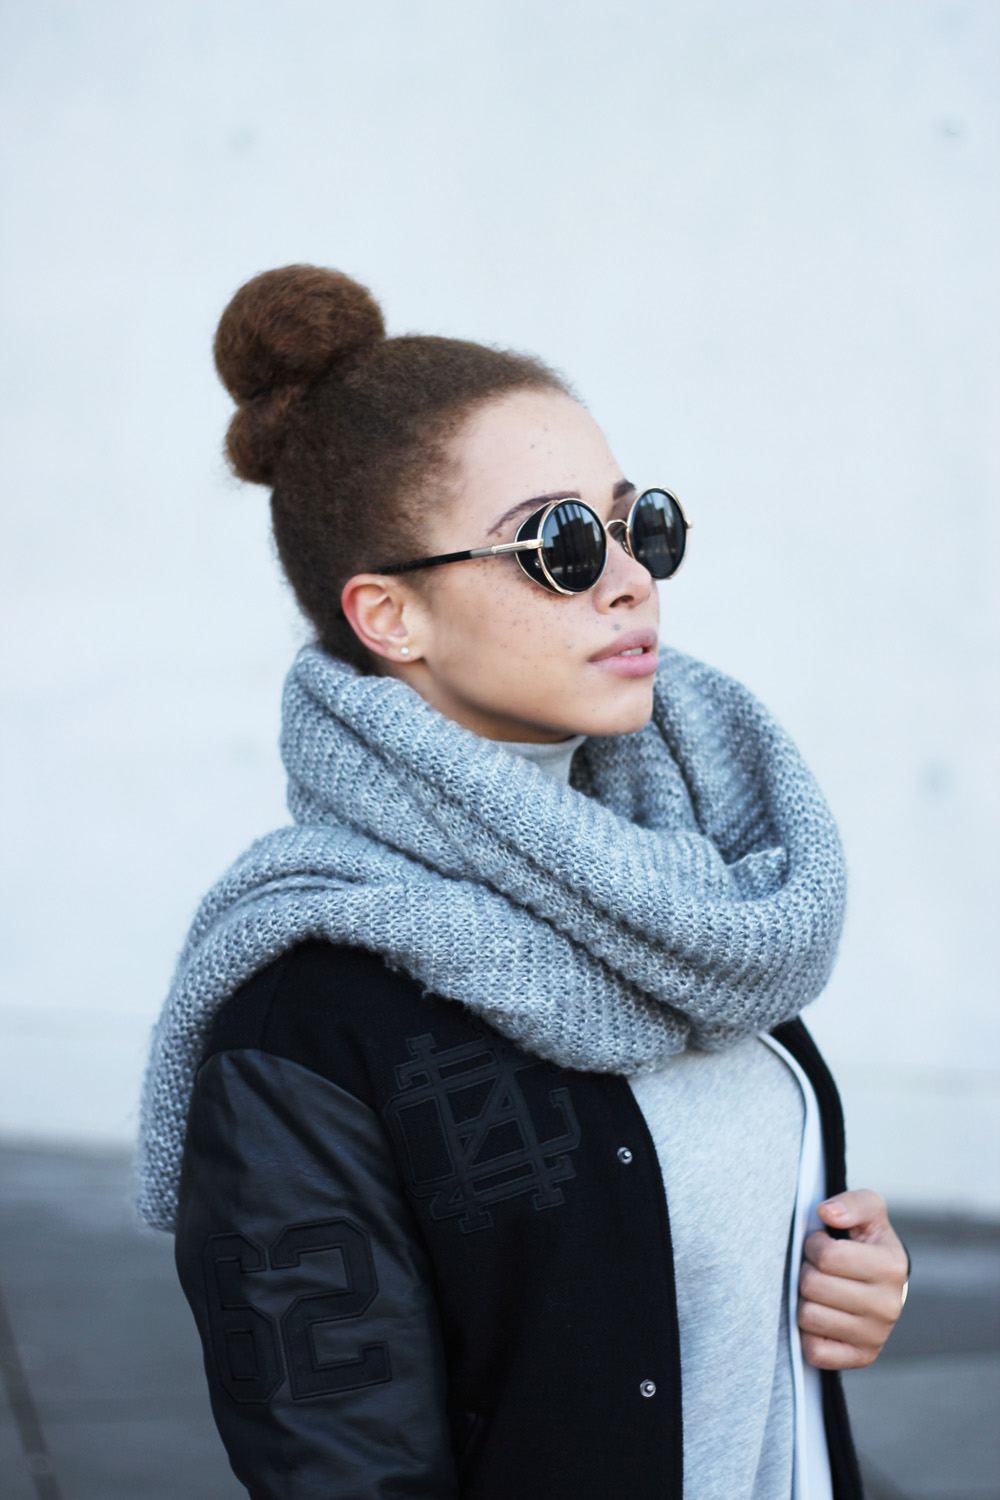 fatimayarie-afrobun-retro-pilotglasses-grey-scarf-bomberjacket-collegesweater-img_6319